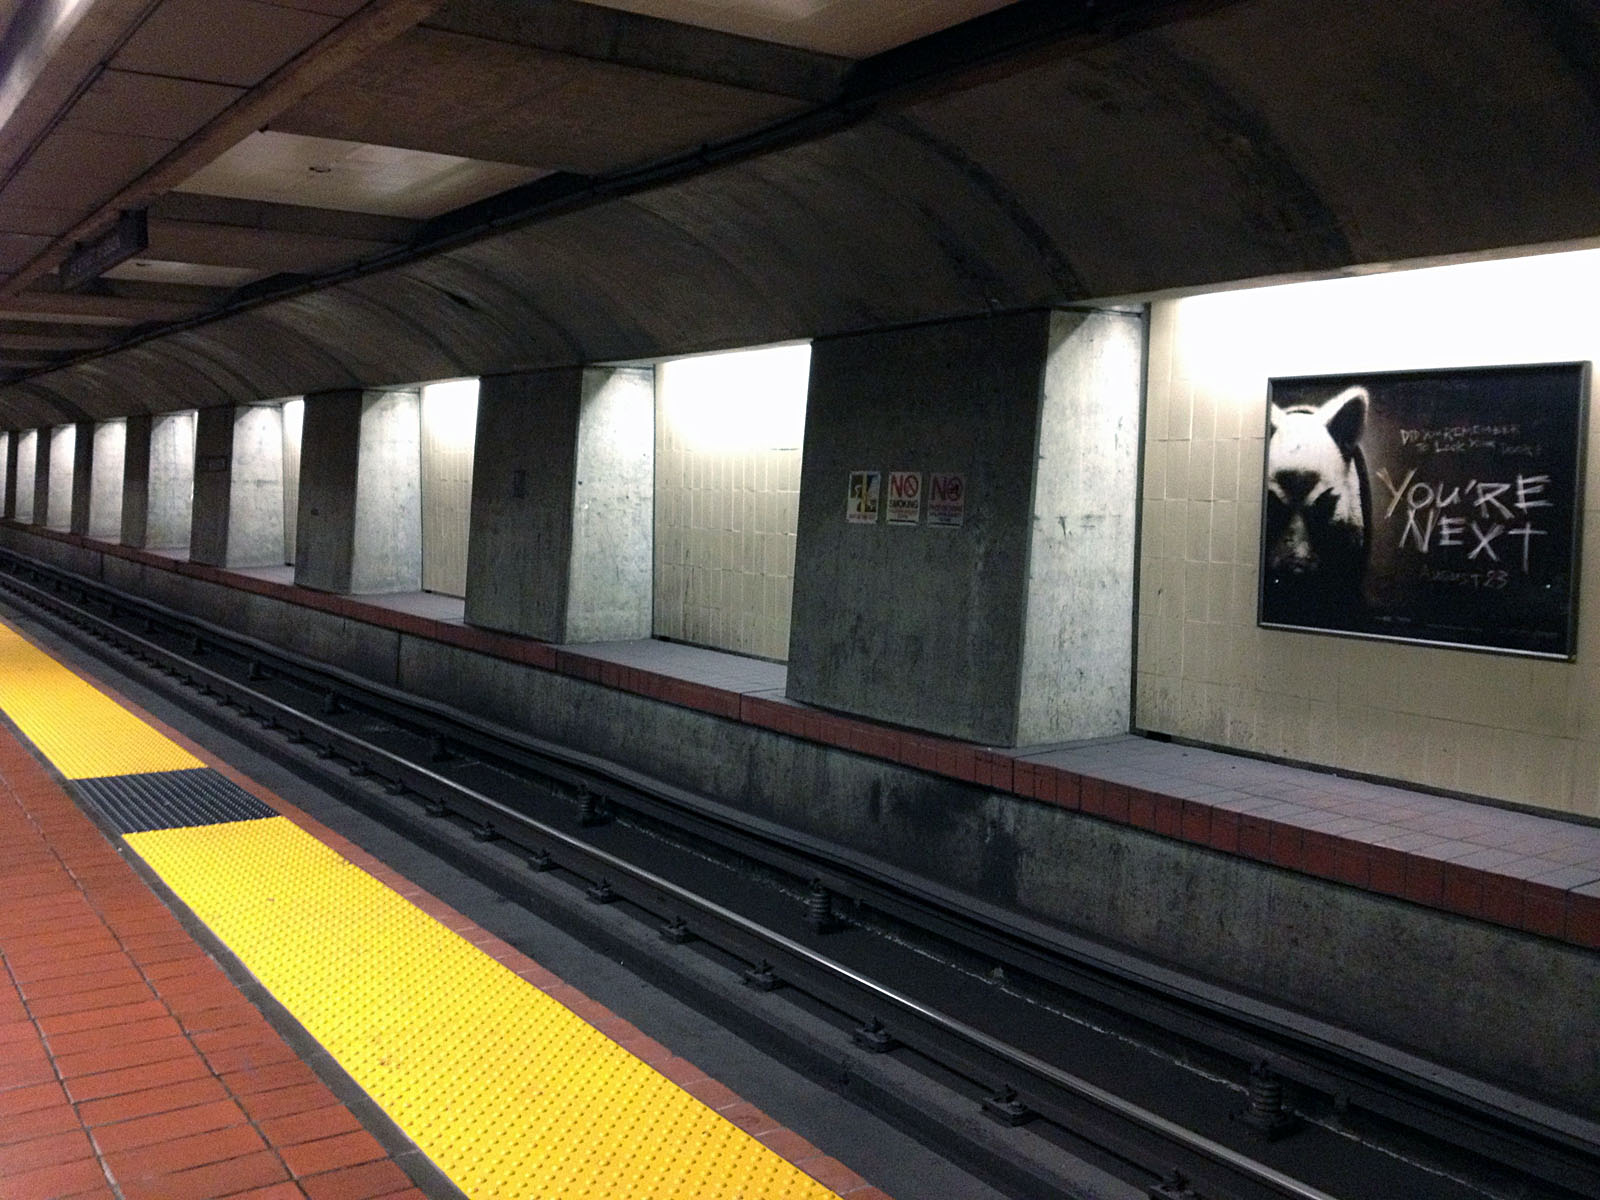 BART Back But Expect Delays